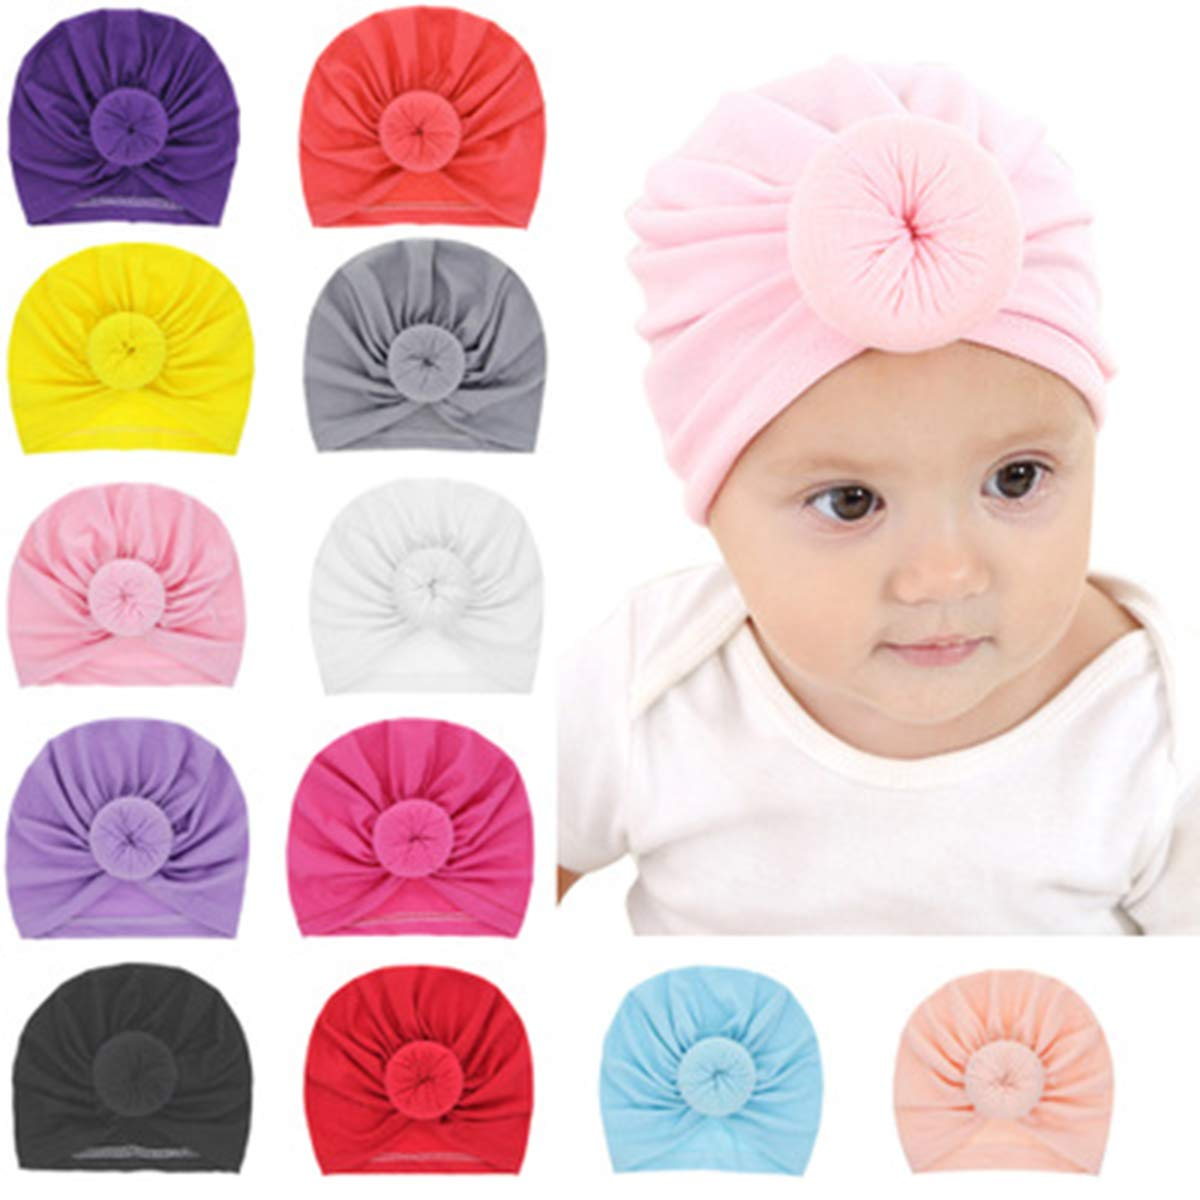 ZOONAI Infant Toddler Girls Toddler Cotton Hat Baby Turban Ear Cap Kids Head Cap